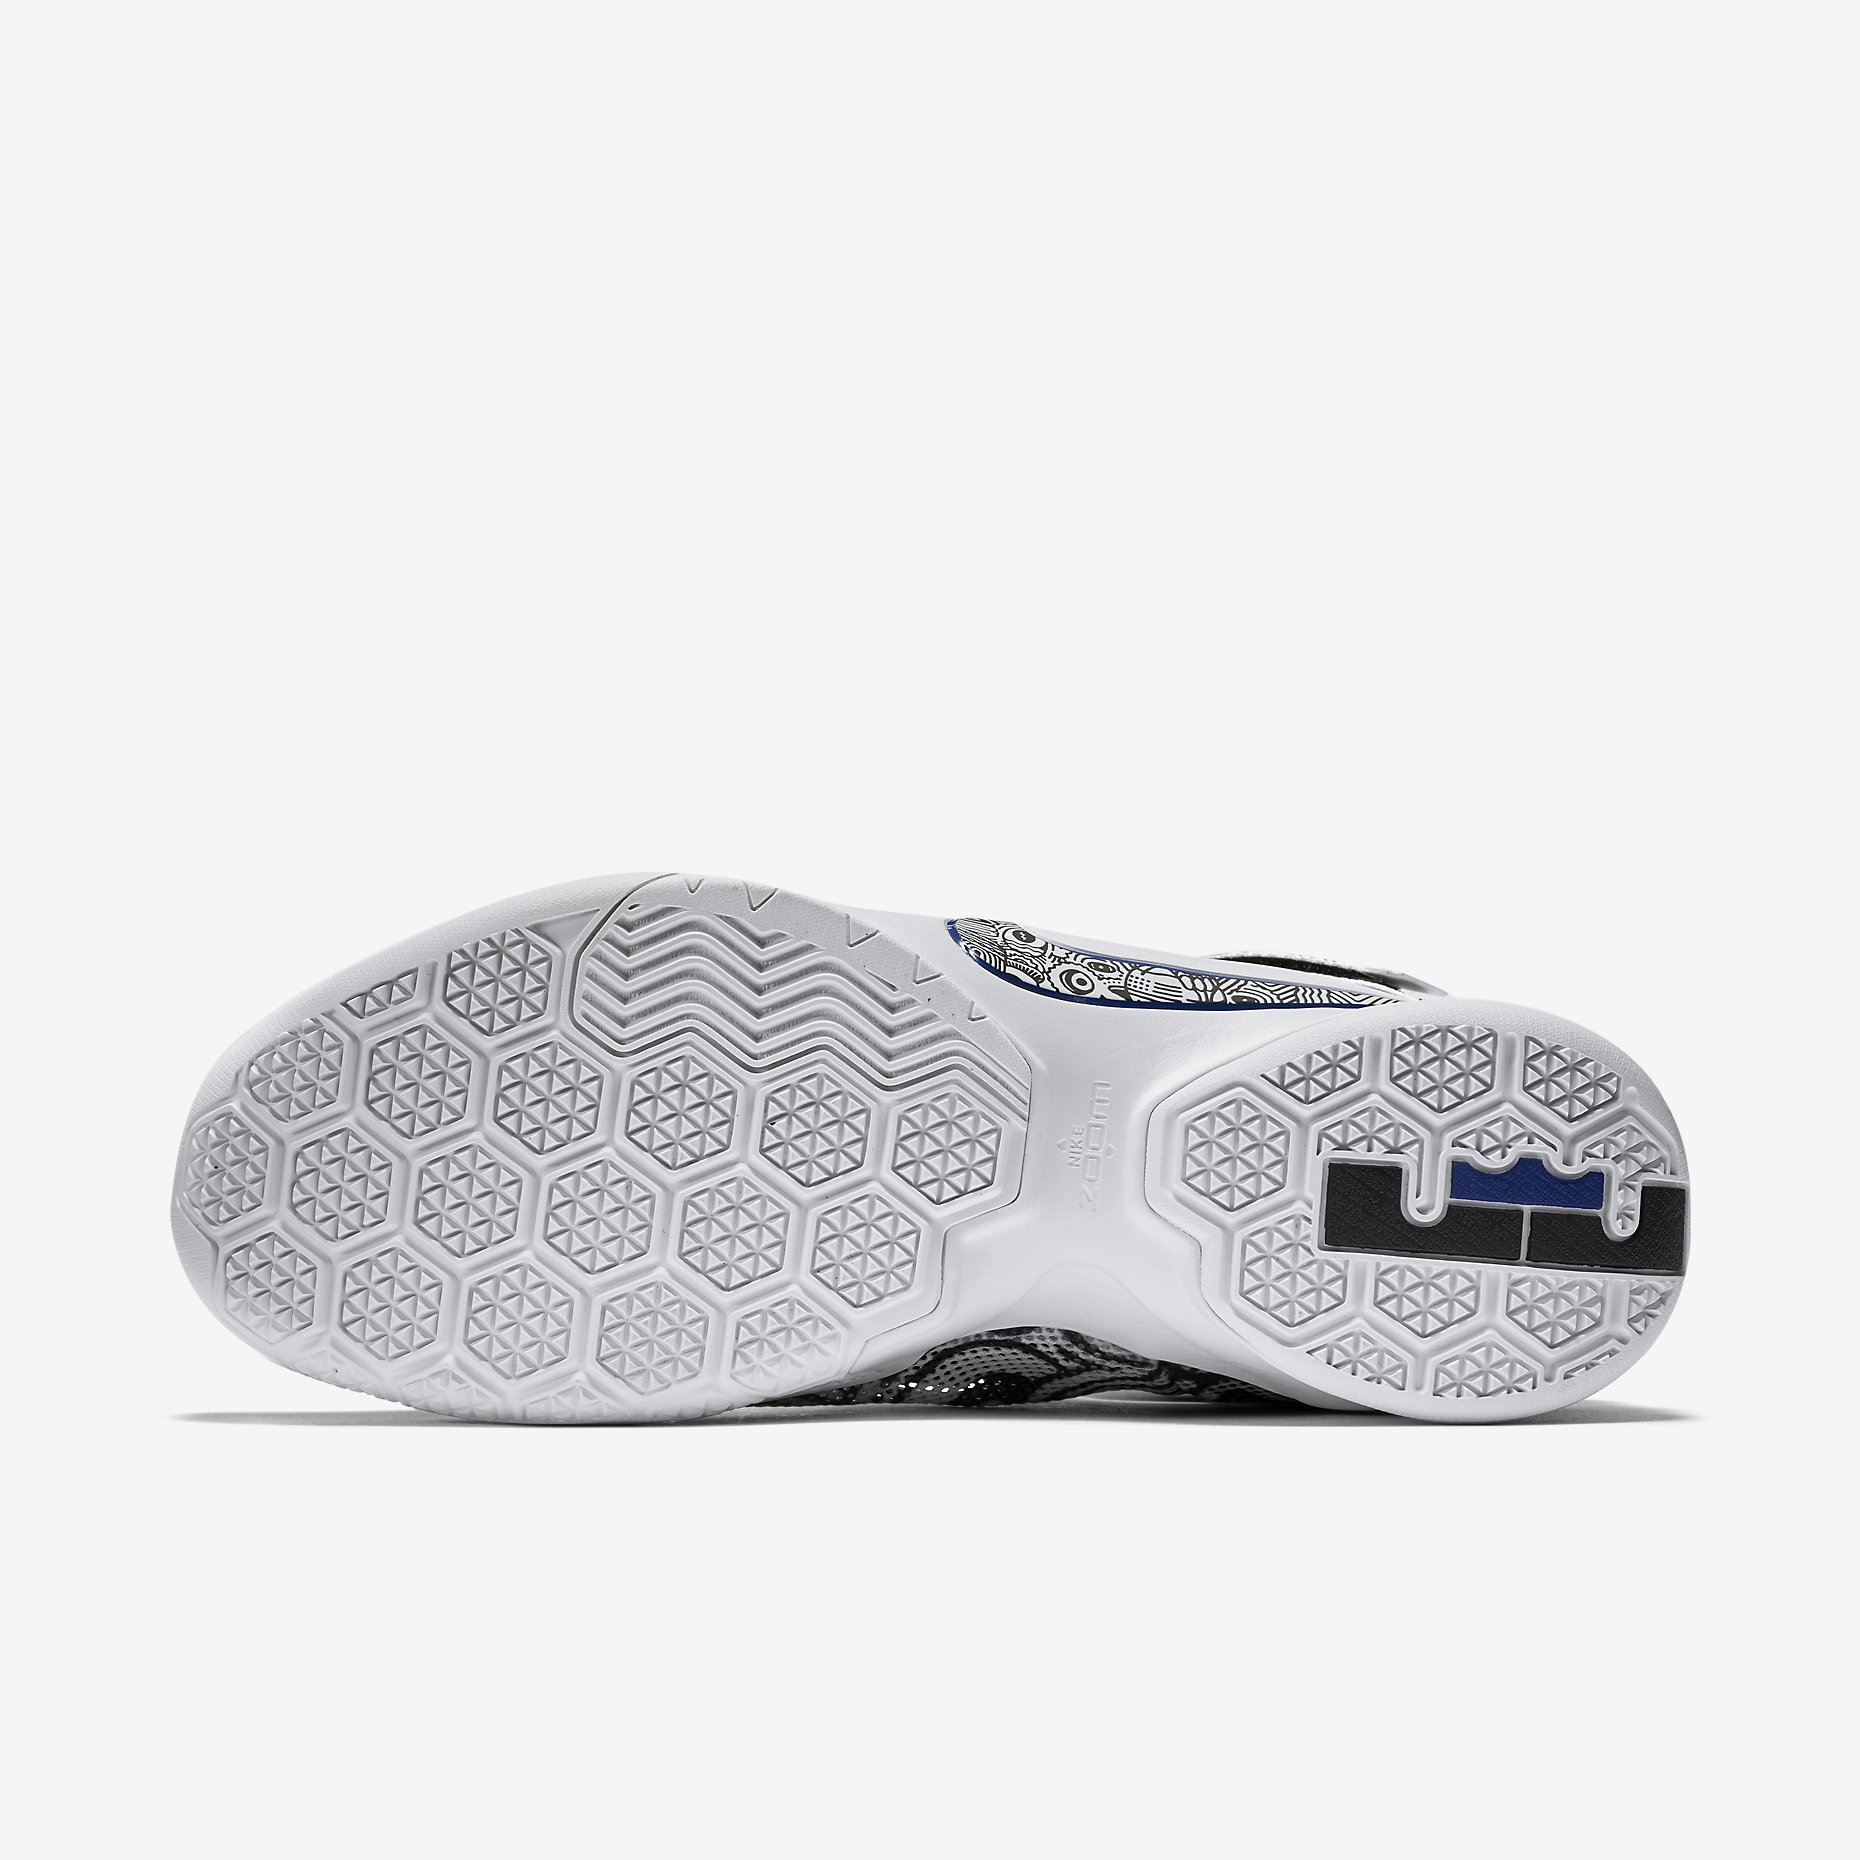 4cd23a7d6e49 Nike Zoom LeBron Soldier 9